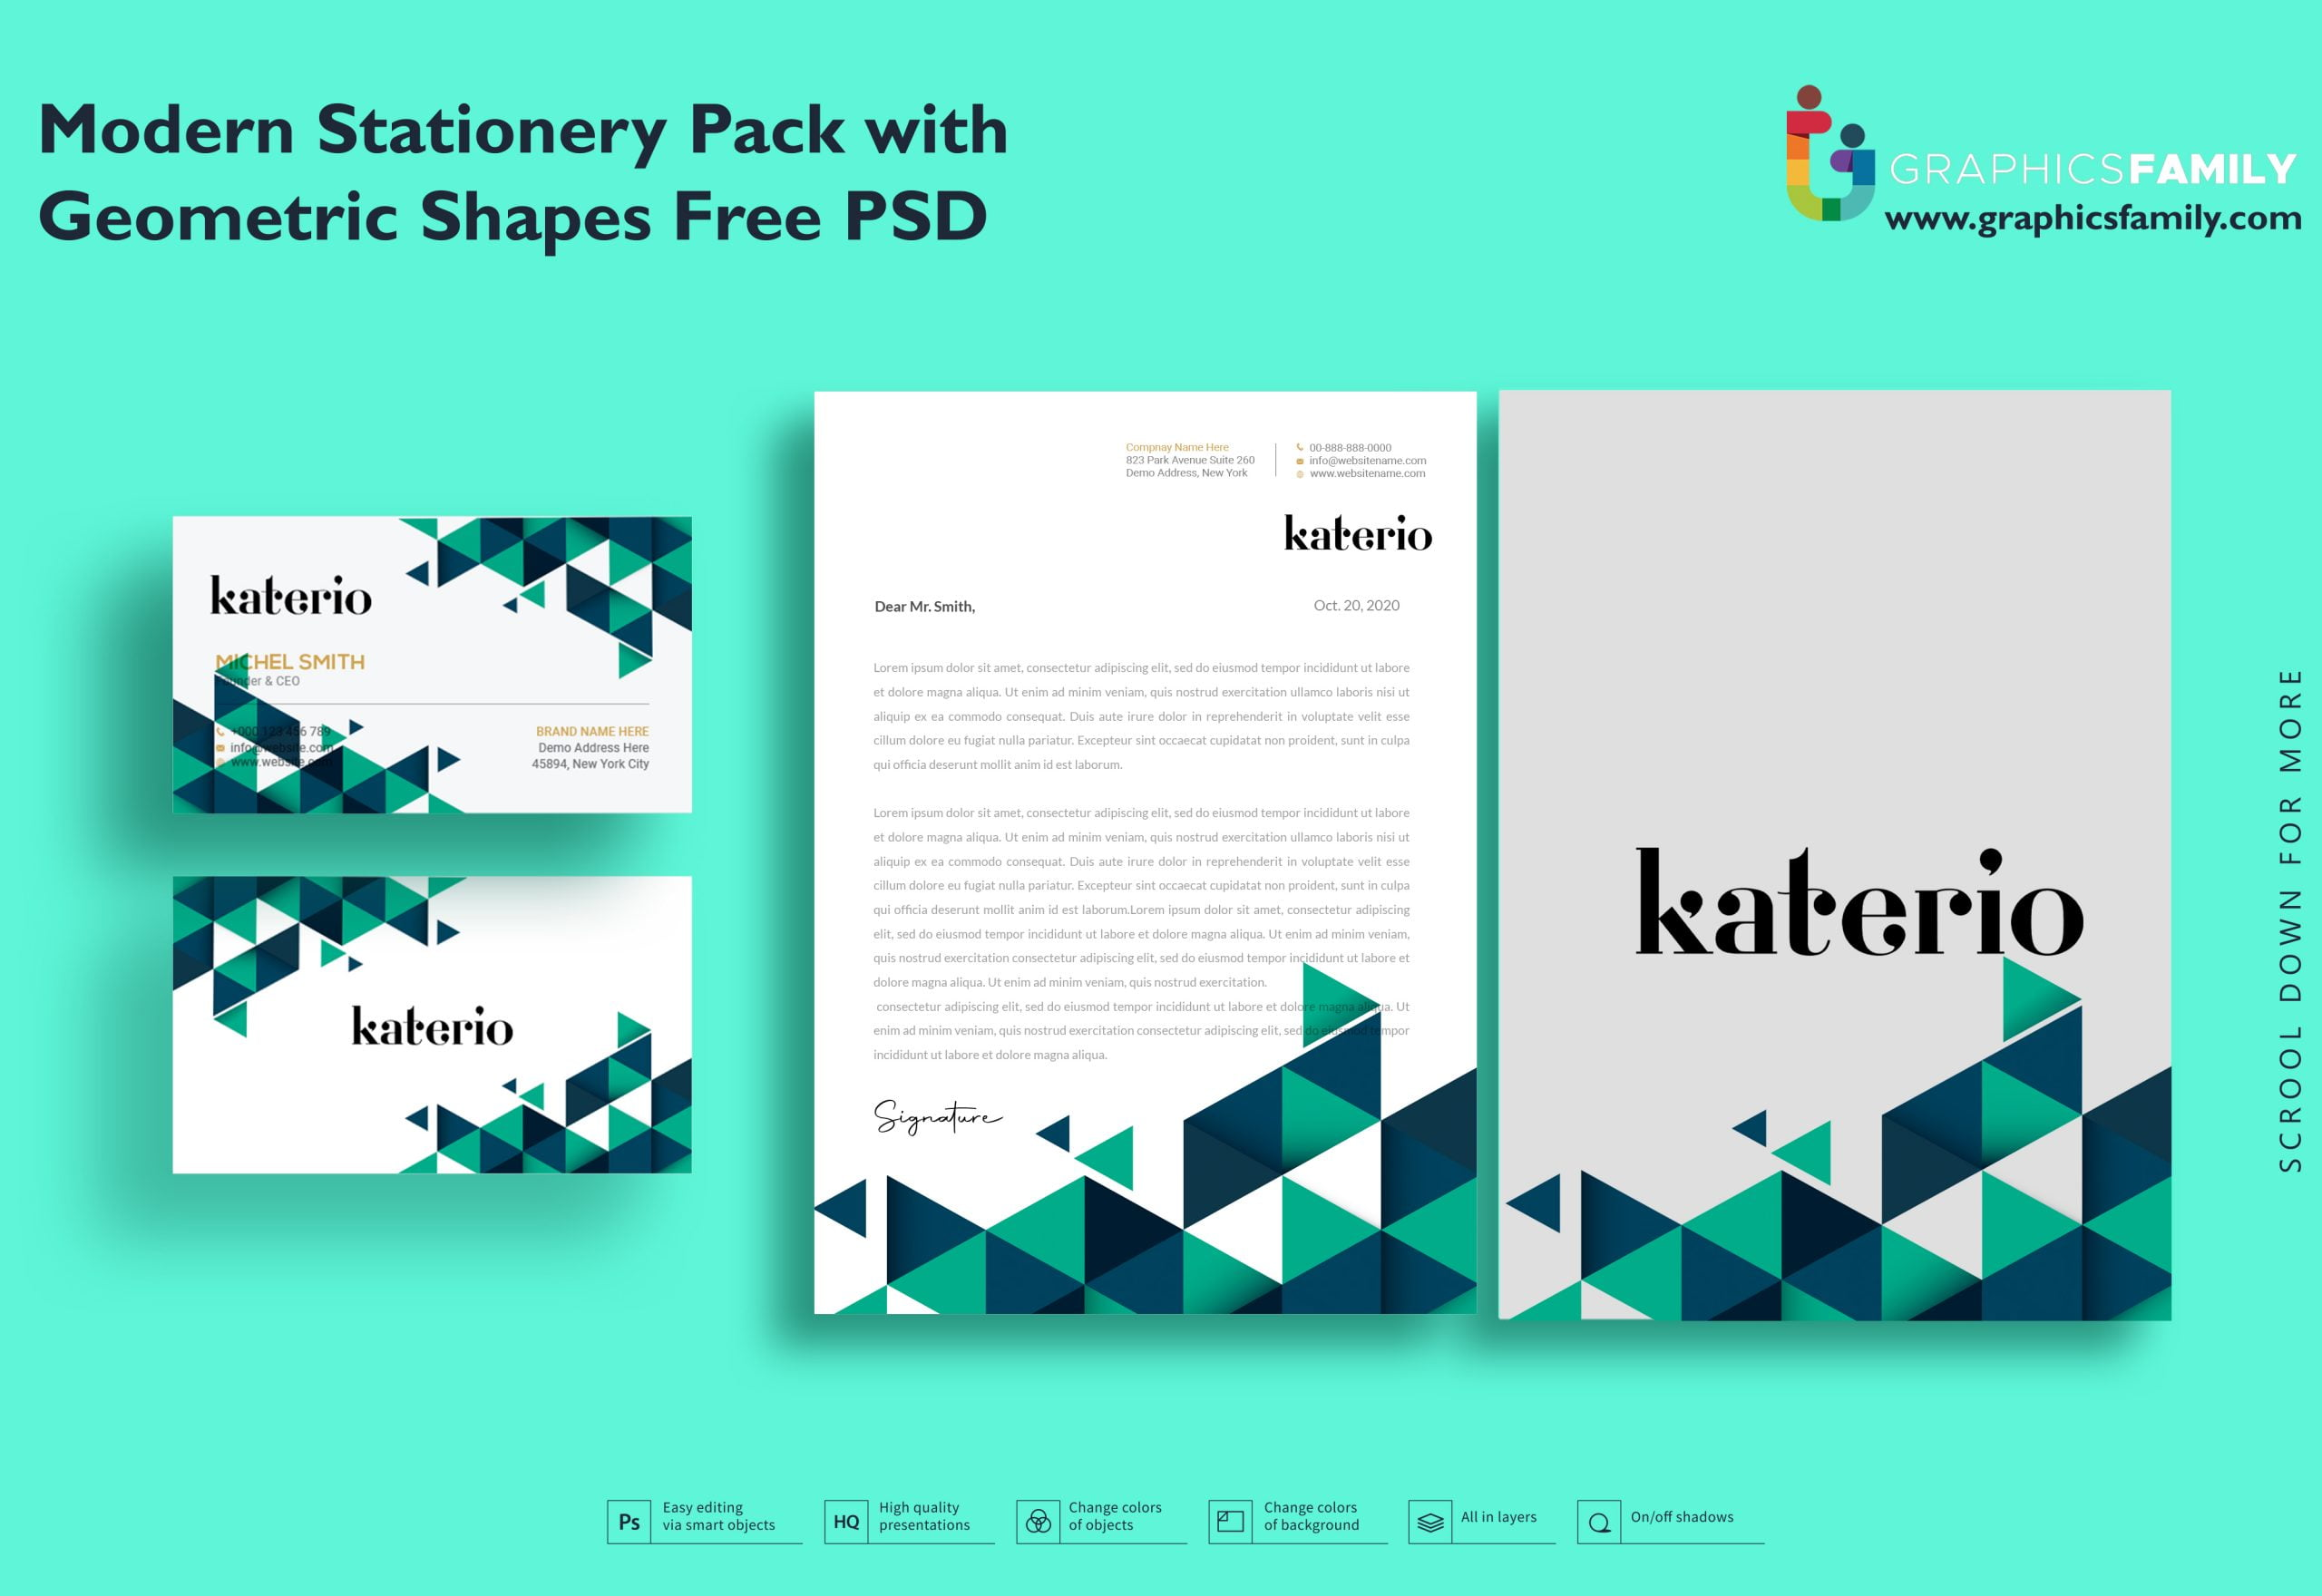 Modern Stationery Pack with Geometric Shapes Free Psd Download